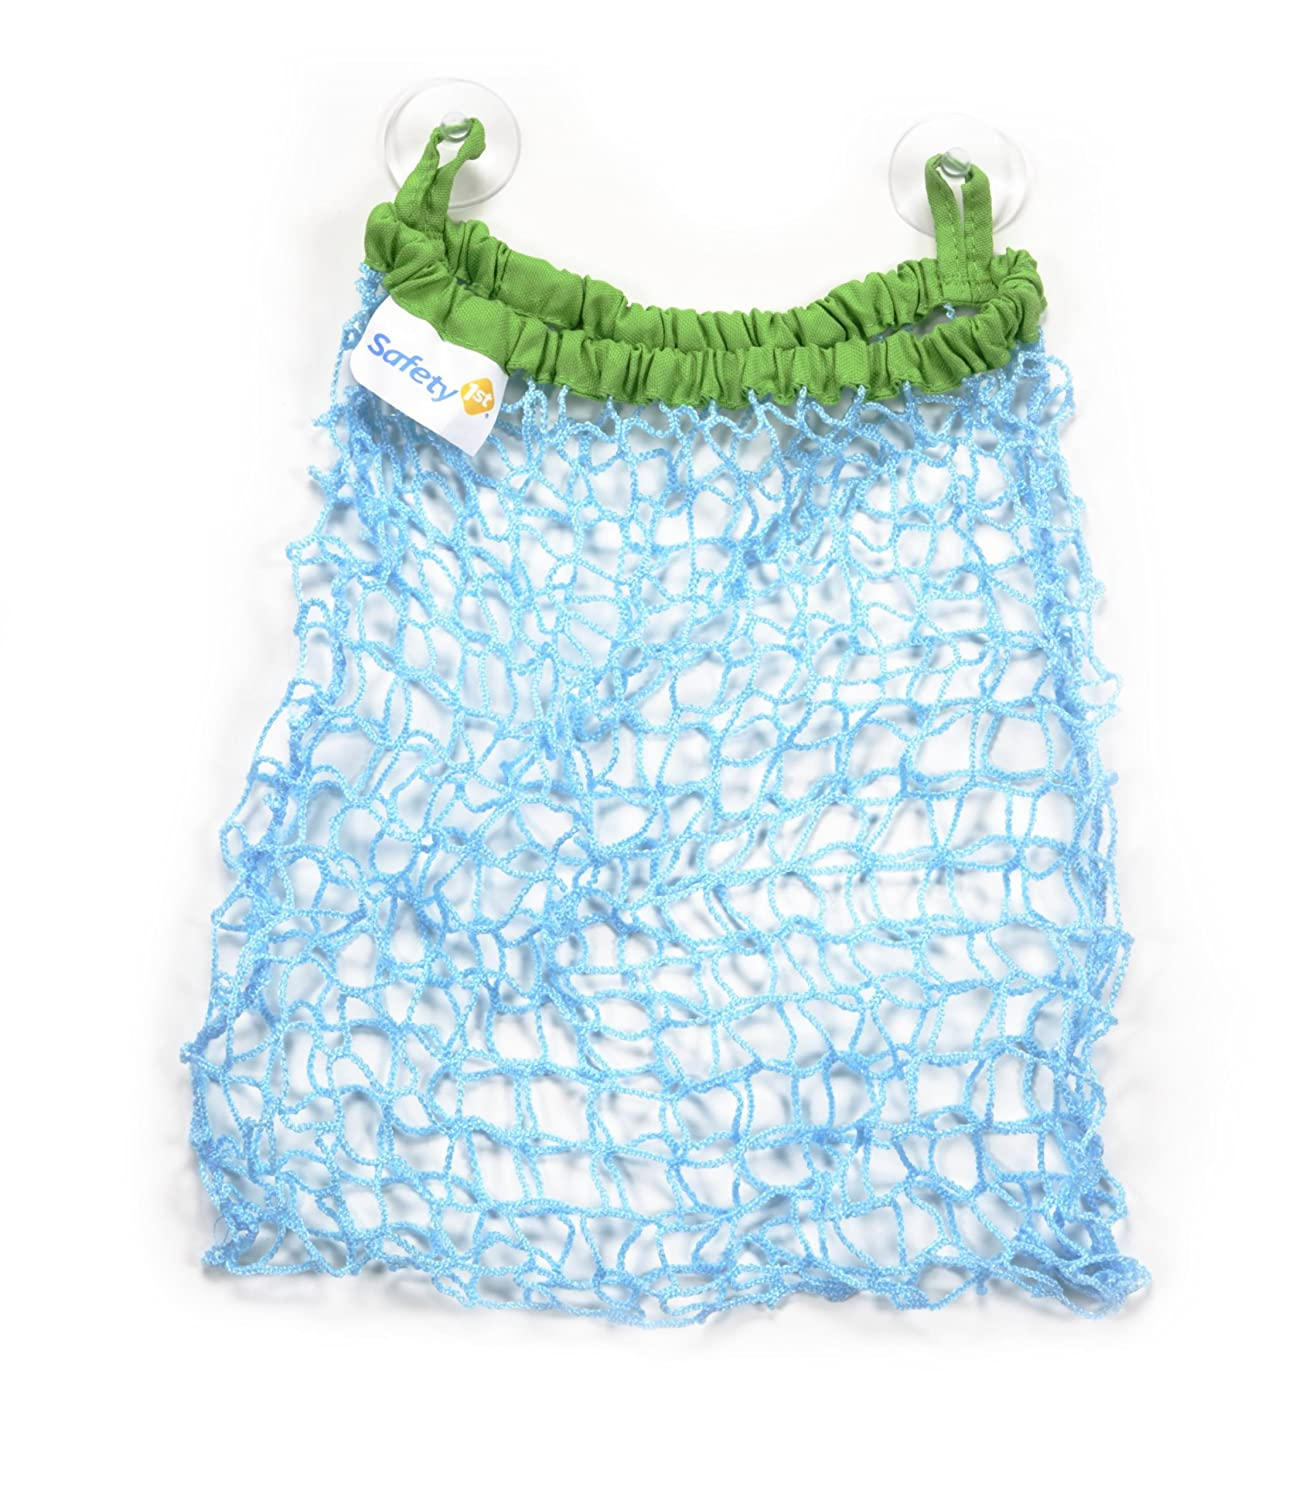 Amazon.com : Safety 1st Bath Toy Bag : Bathtub Toy Bags : Baby